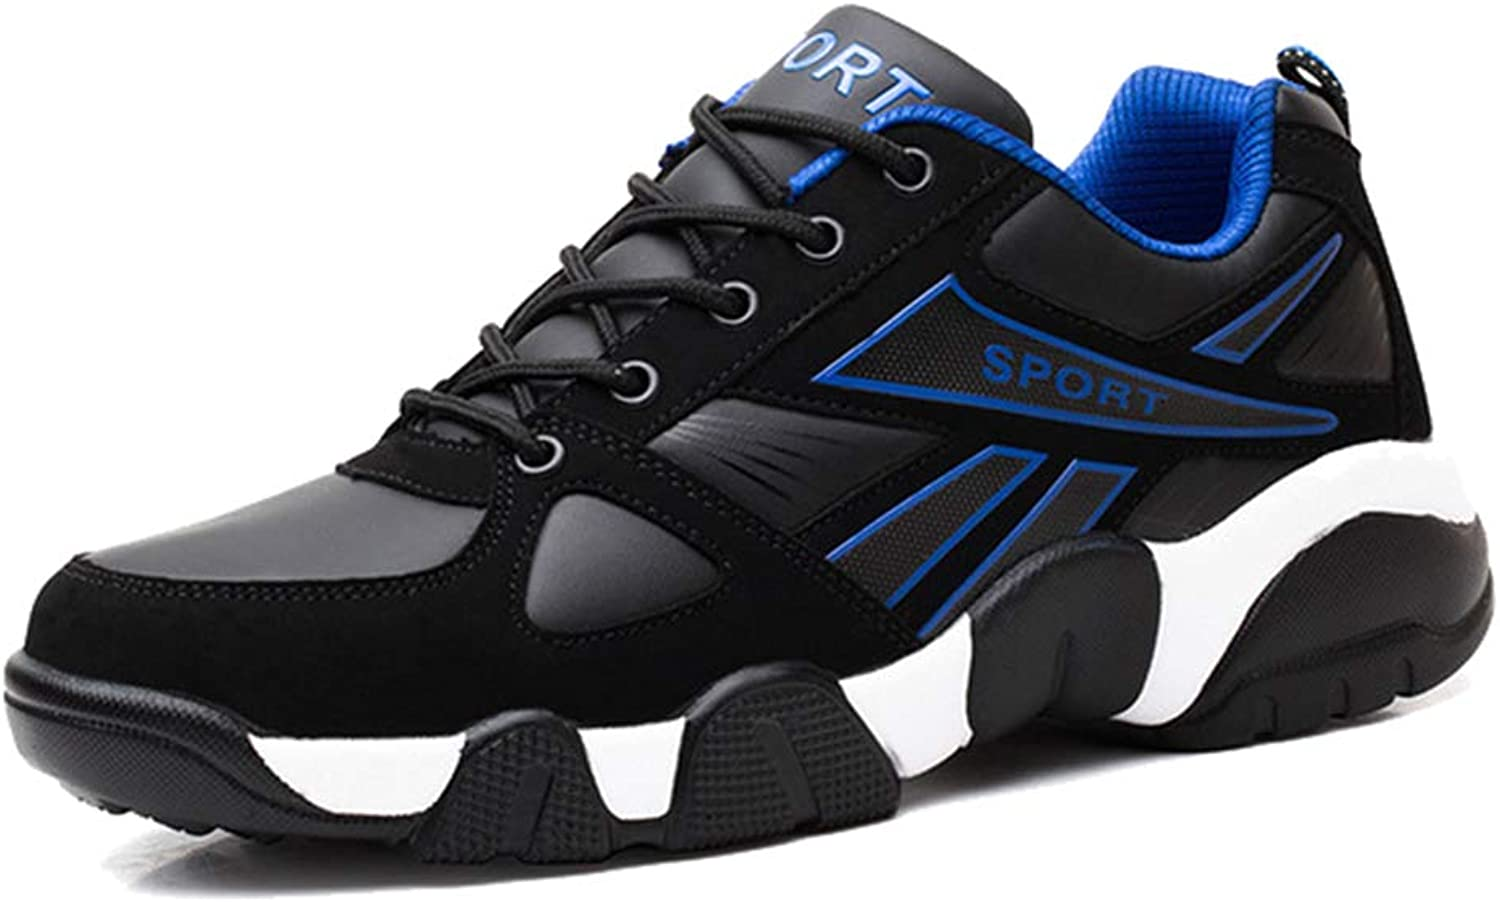 Femaroly Student Basketball shoes Lace-up Sport shoes Fashion Sneakers for Men and Boys